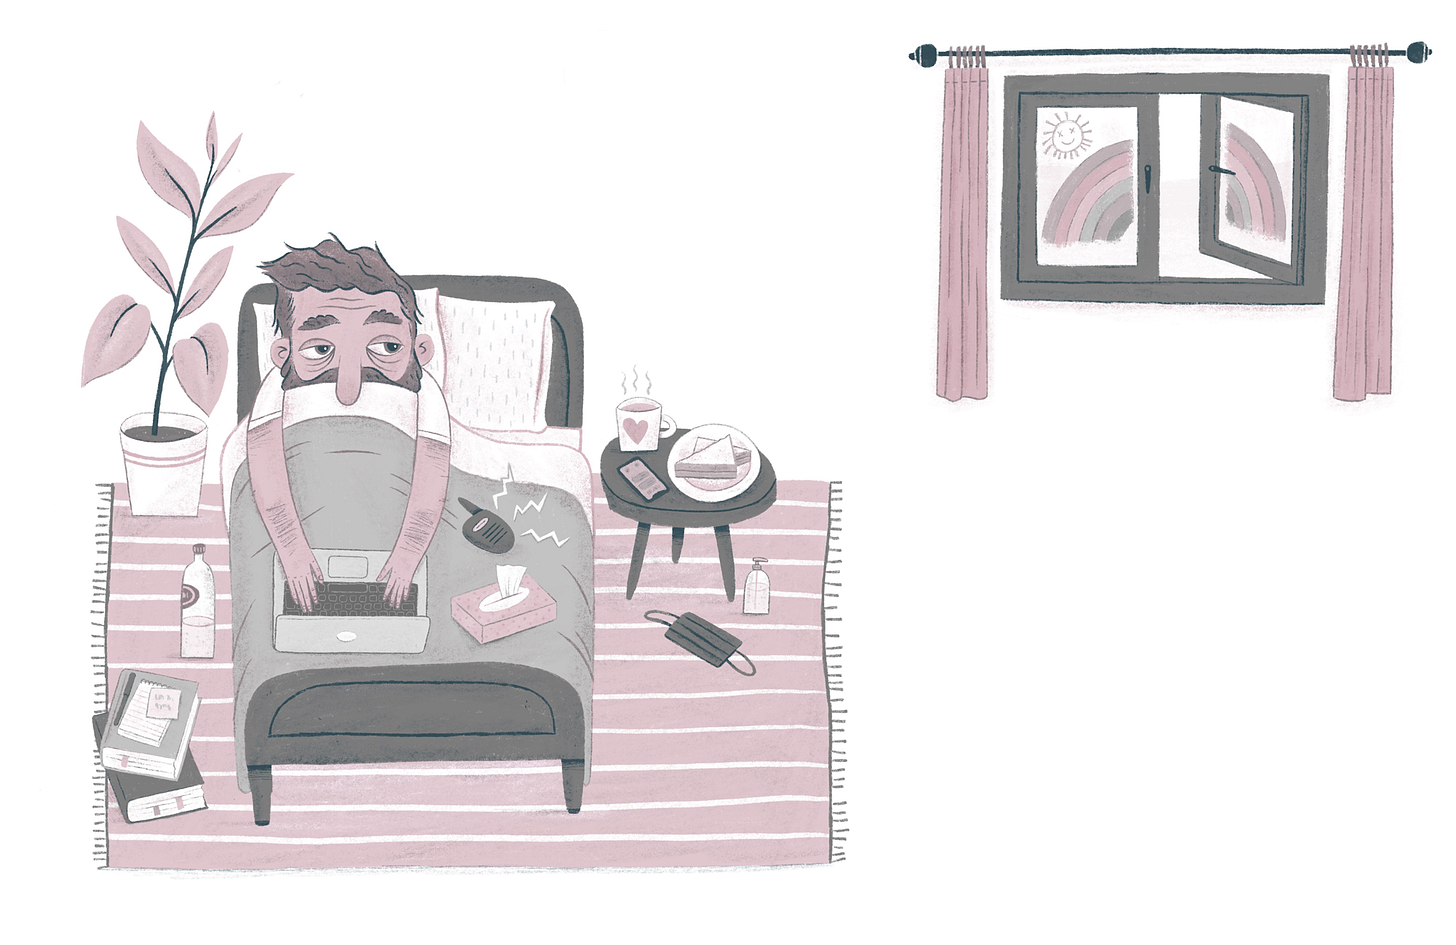 A man lies in bed, sick, looking out of the window.